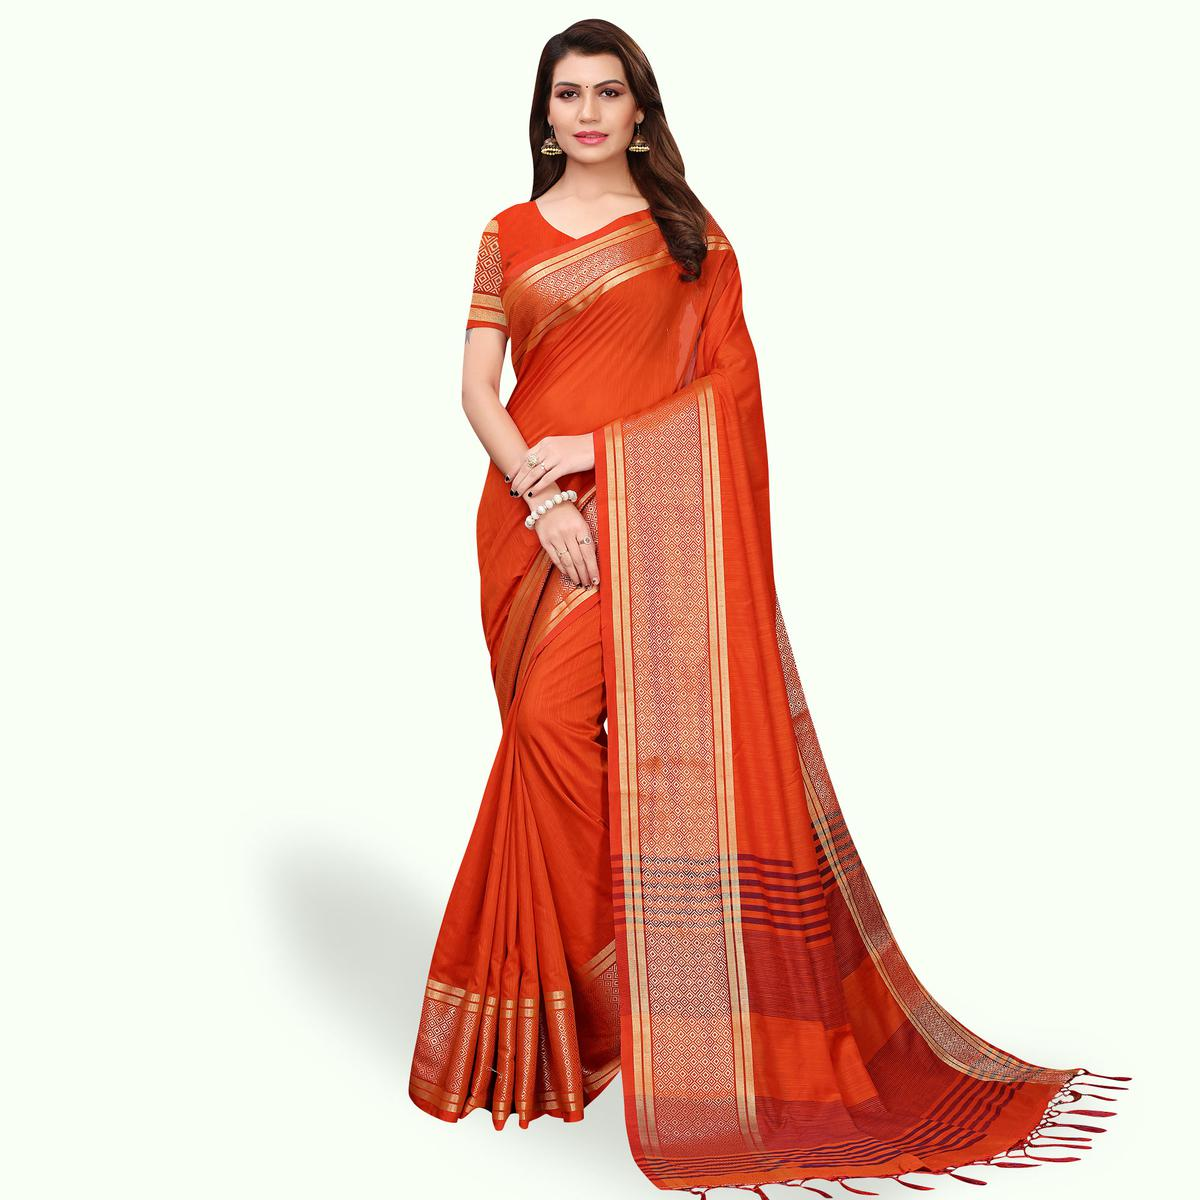 Engrossing Orange Colored Festive Wear Cotton Linen Saree